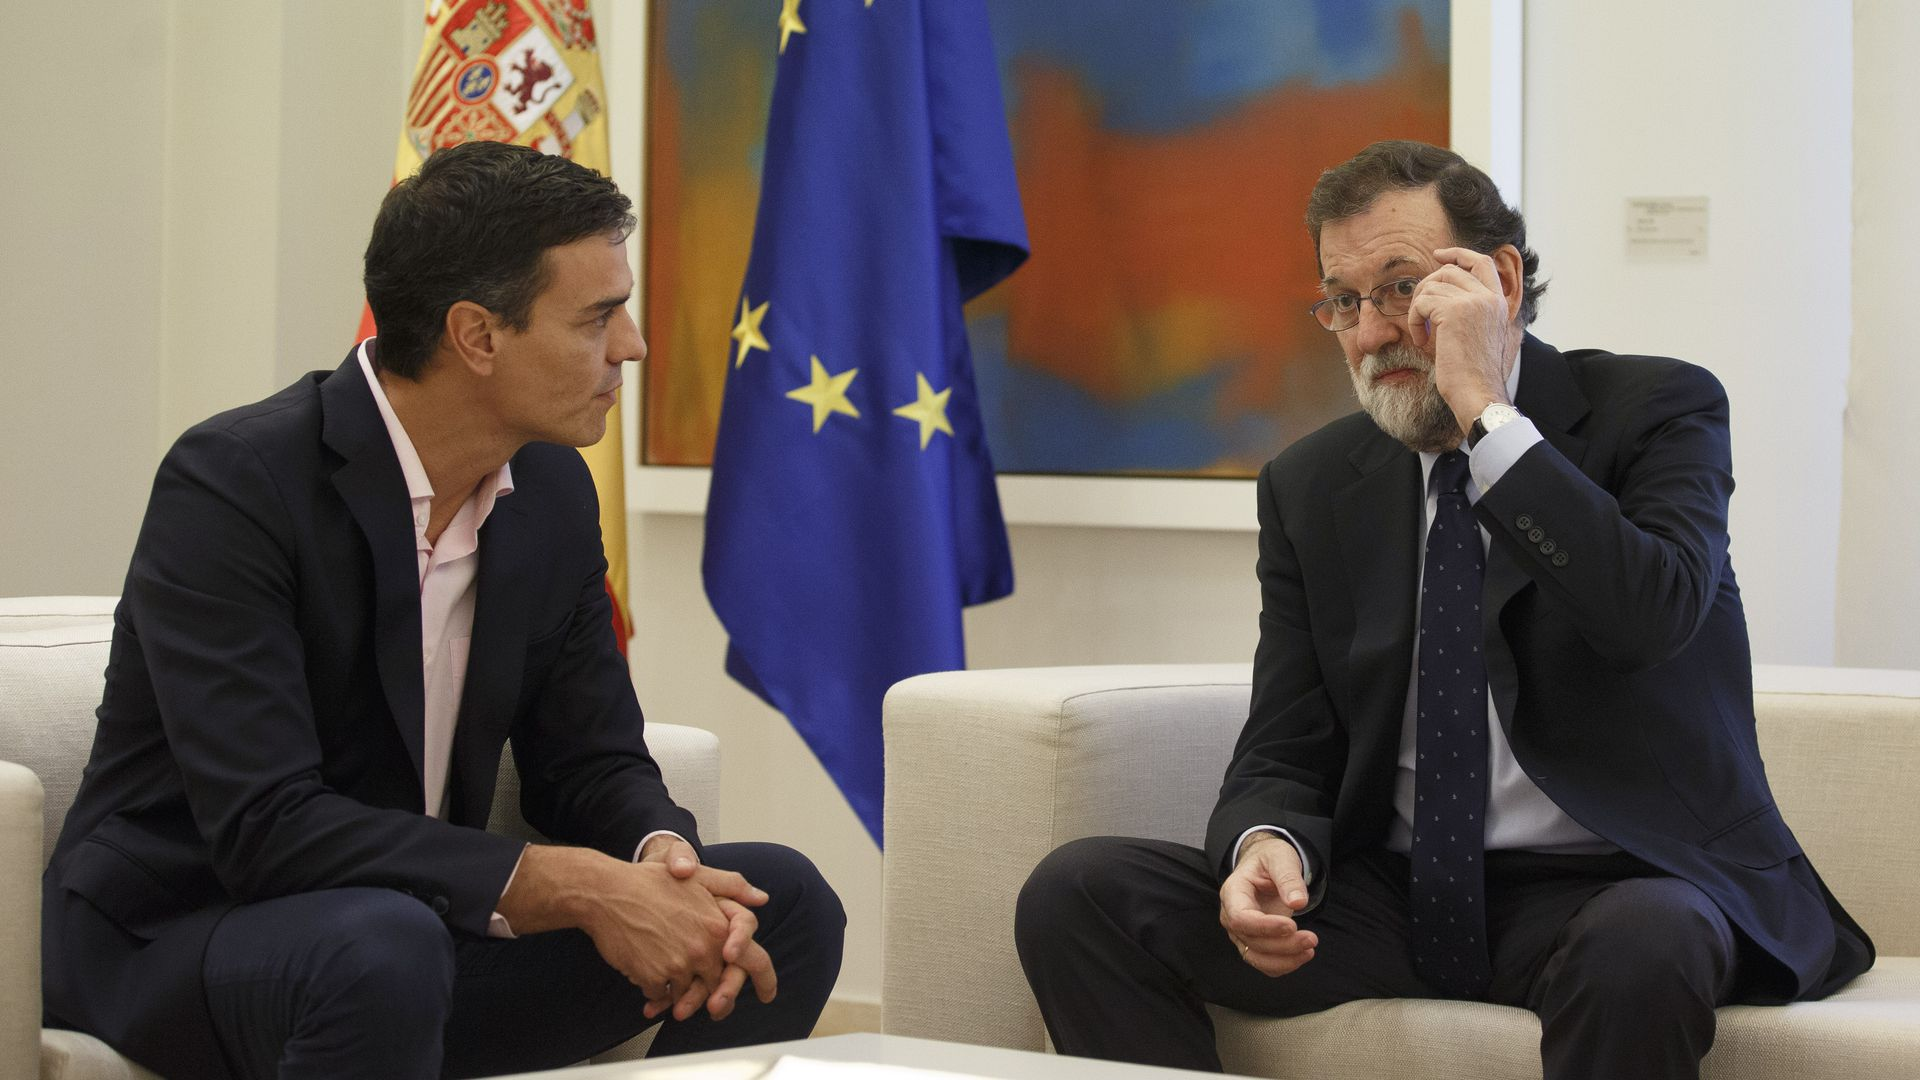 Former Spanish prime minister Mariano Rajoy talks with his successor, Pedro Sanchez